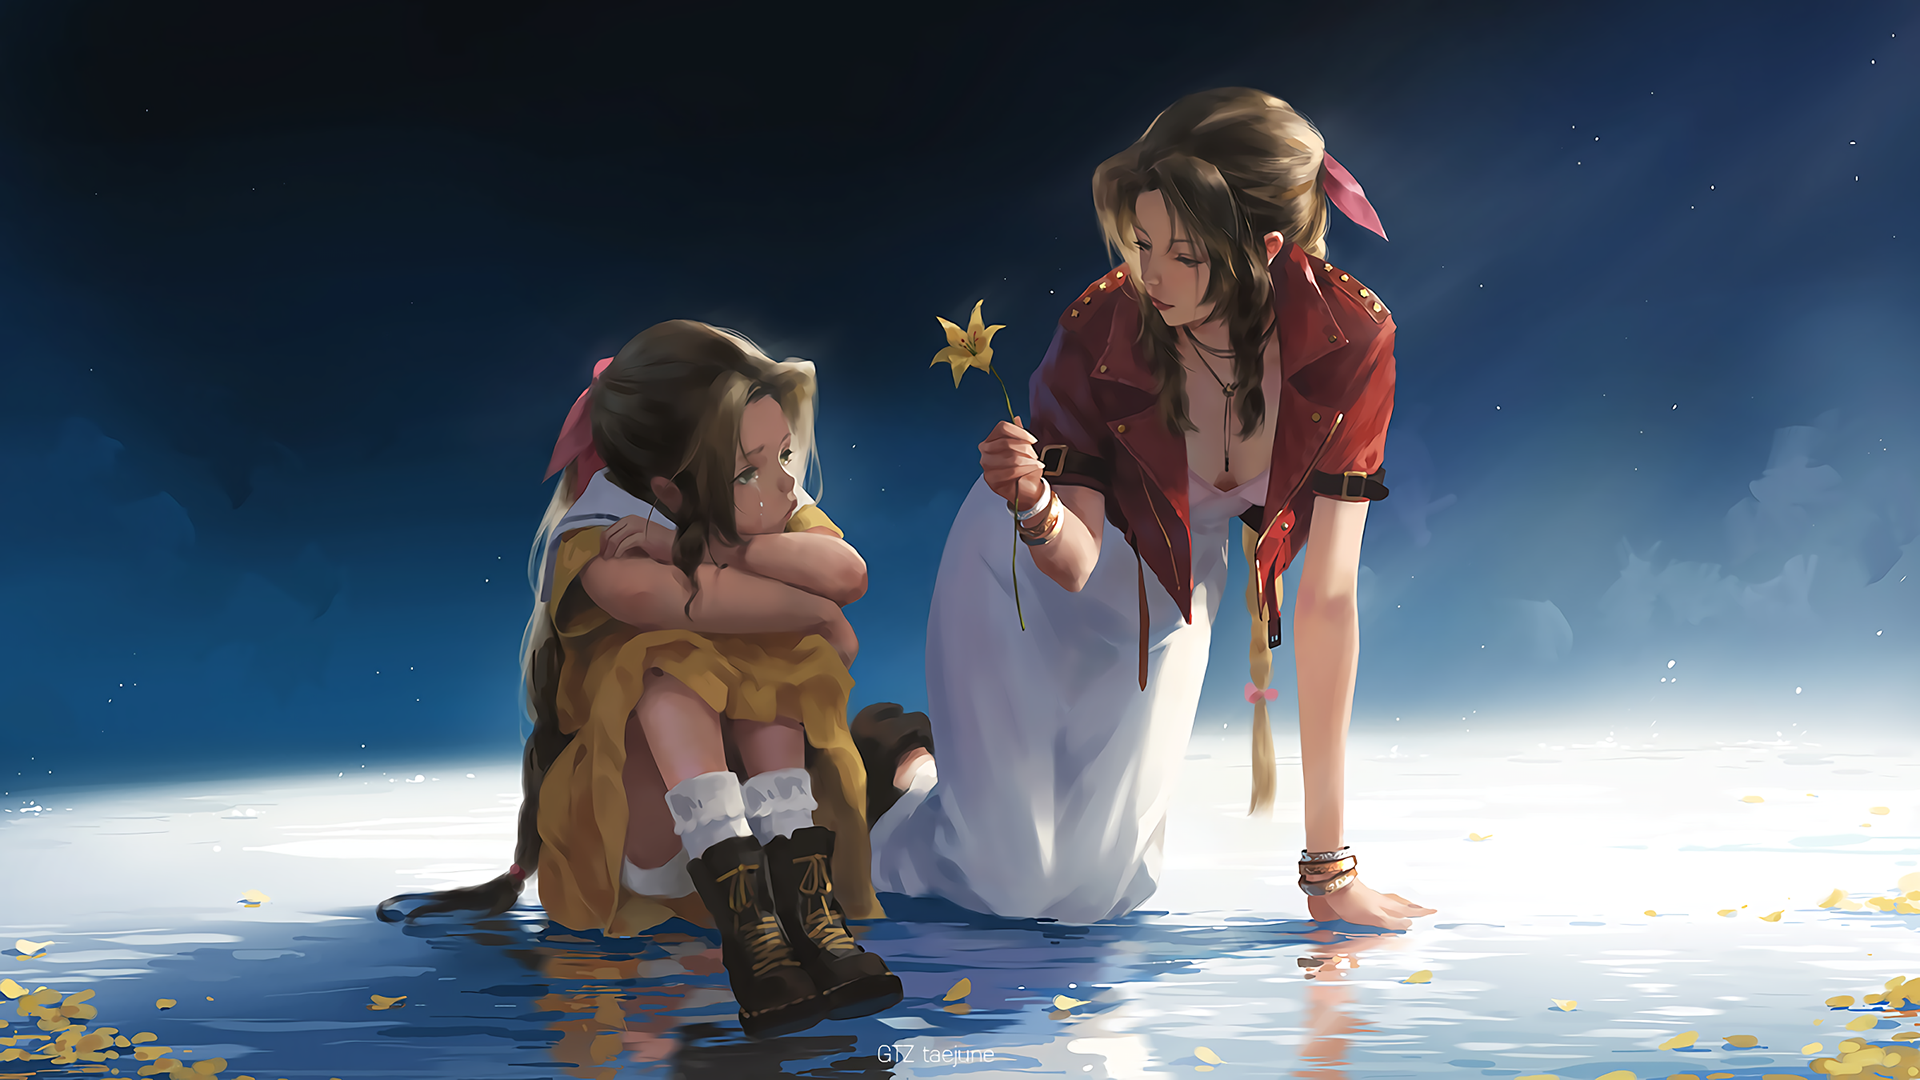 Anime 1920x1080 long hair water leaves flowers Final Fantasy VII bracelets necklace cleavage Aerith Gainsborough anime